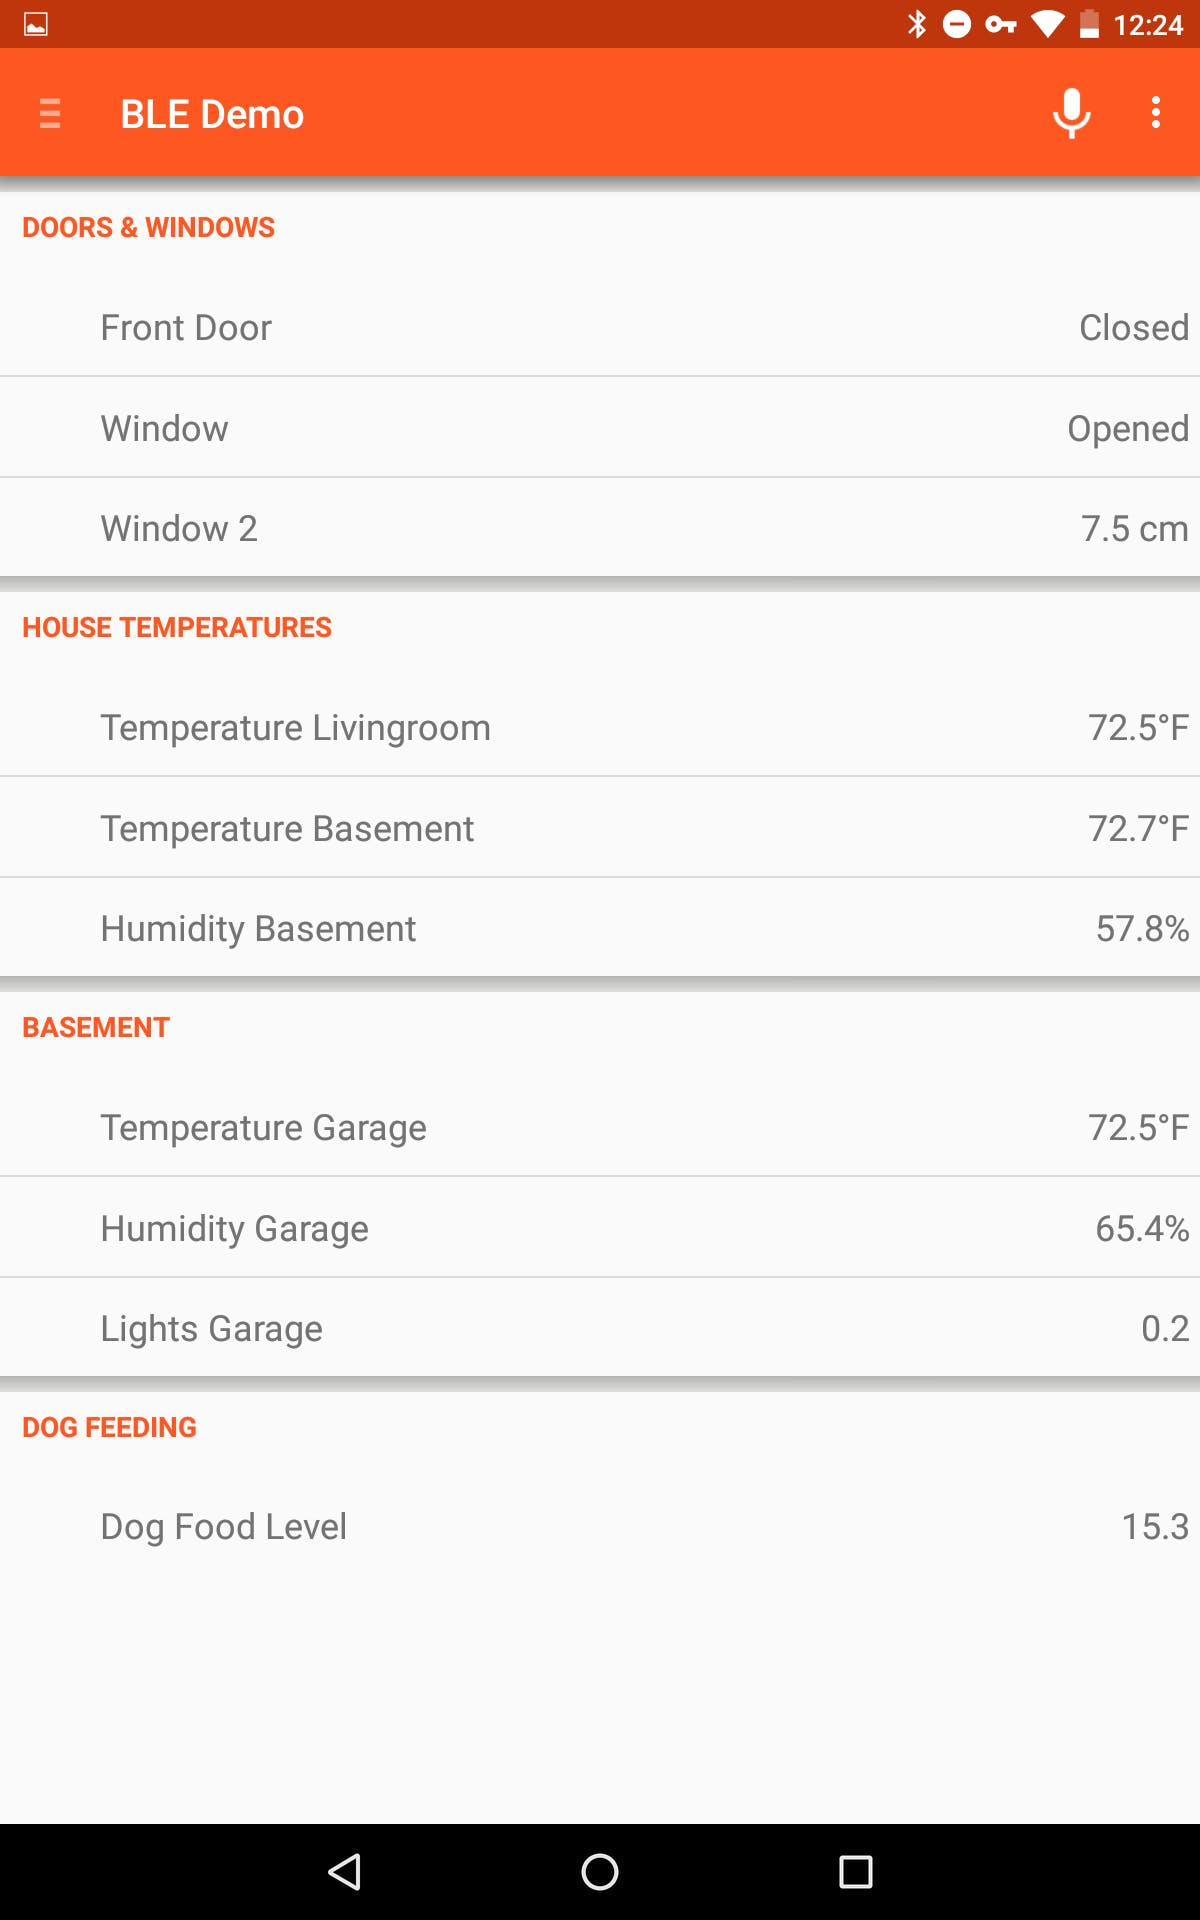 Example OpenHAB dashboard to display BLE sensor data